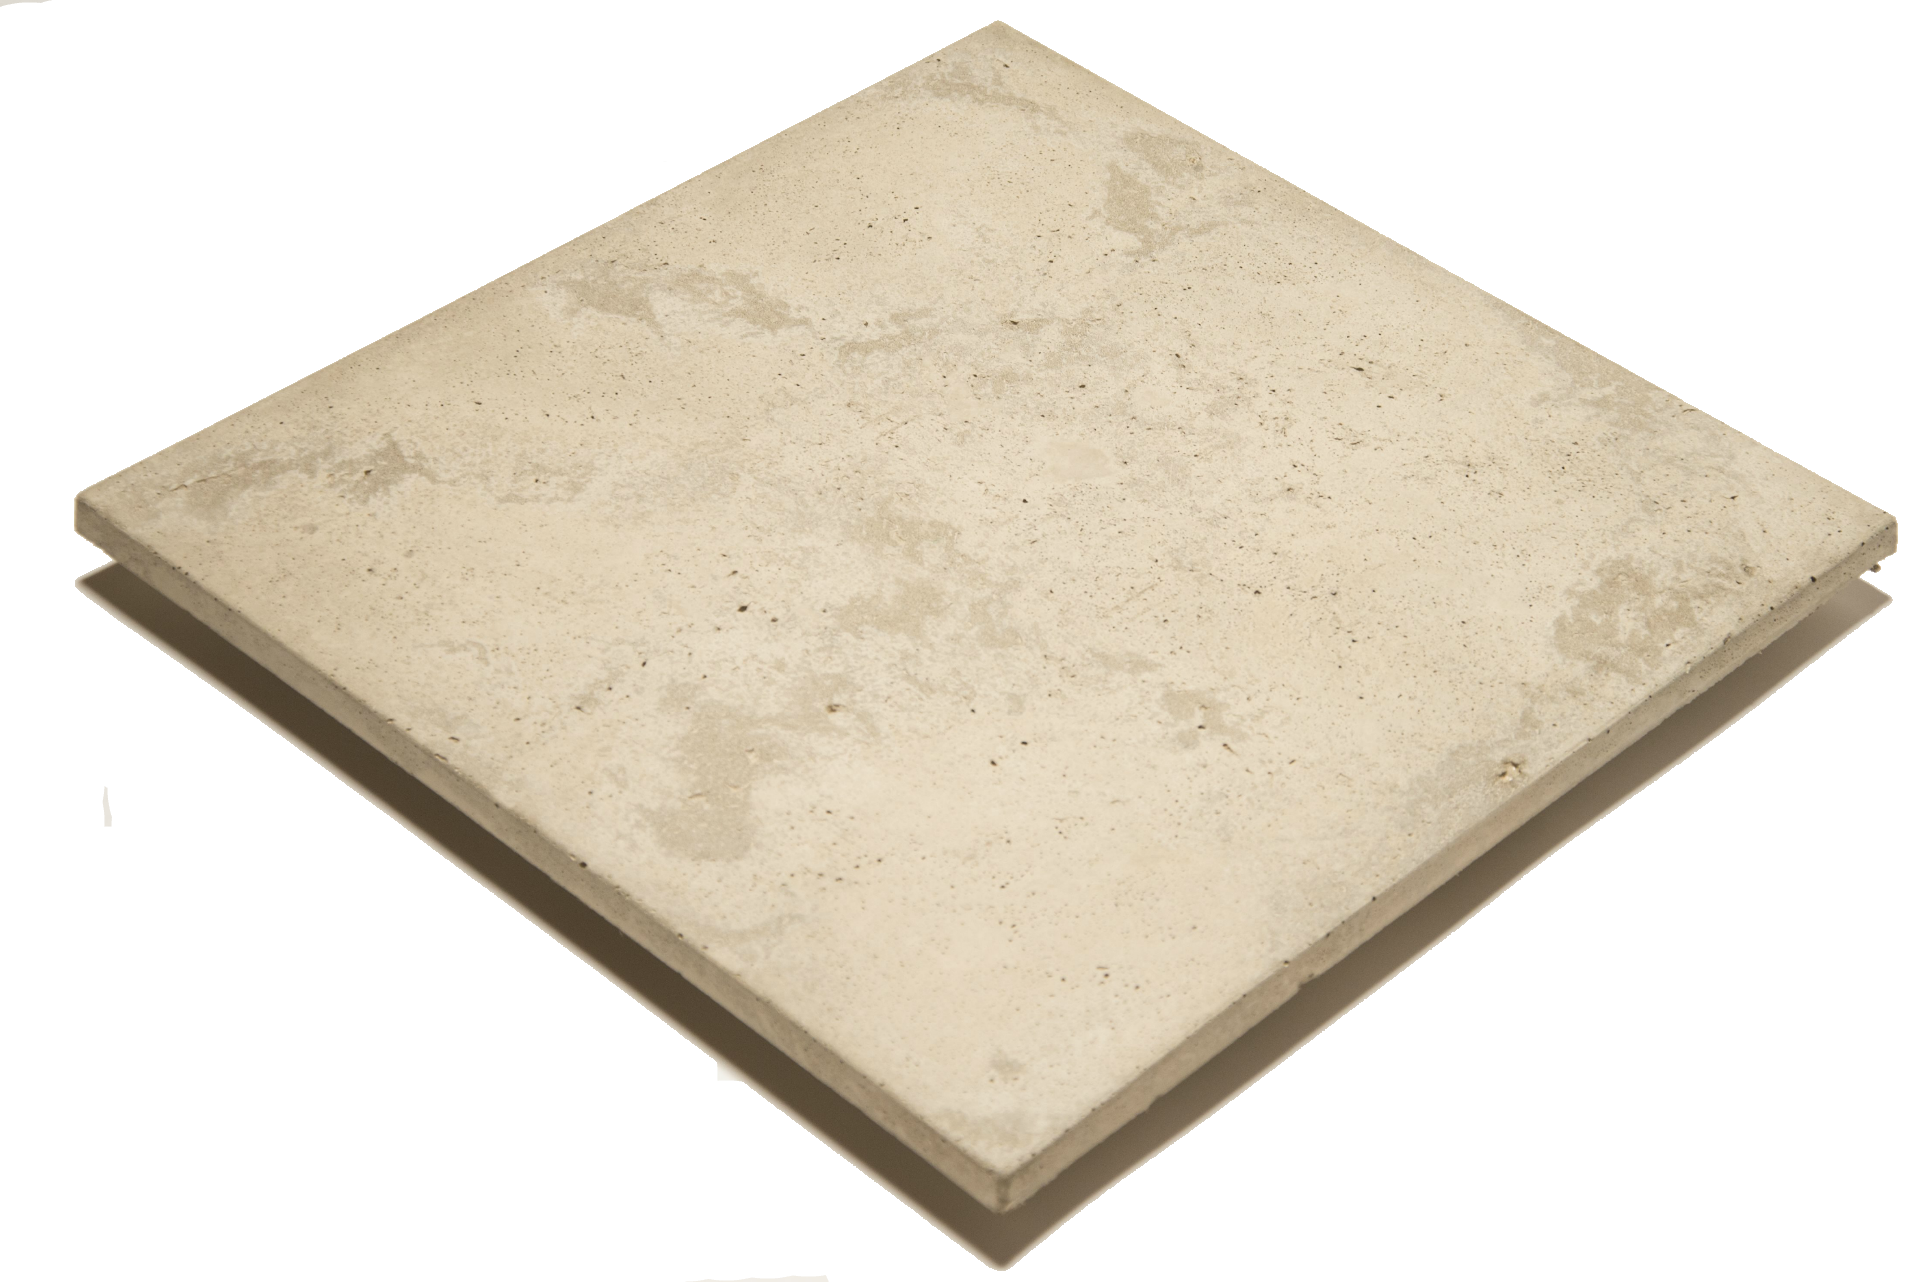 integrastone tile transparent.png